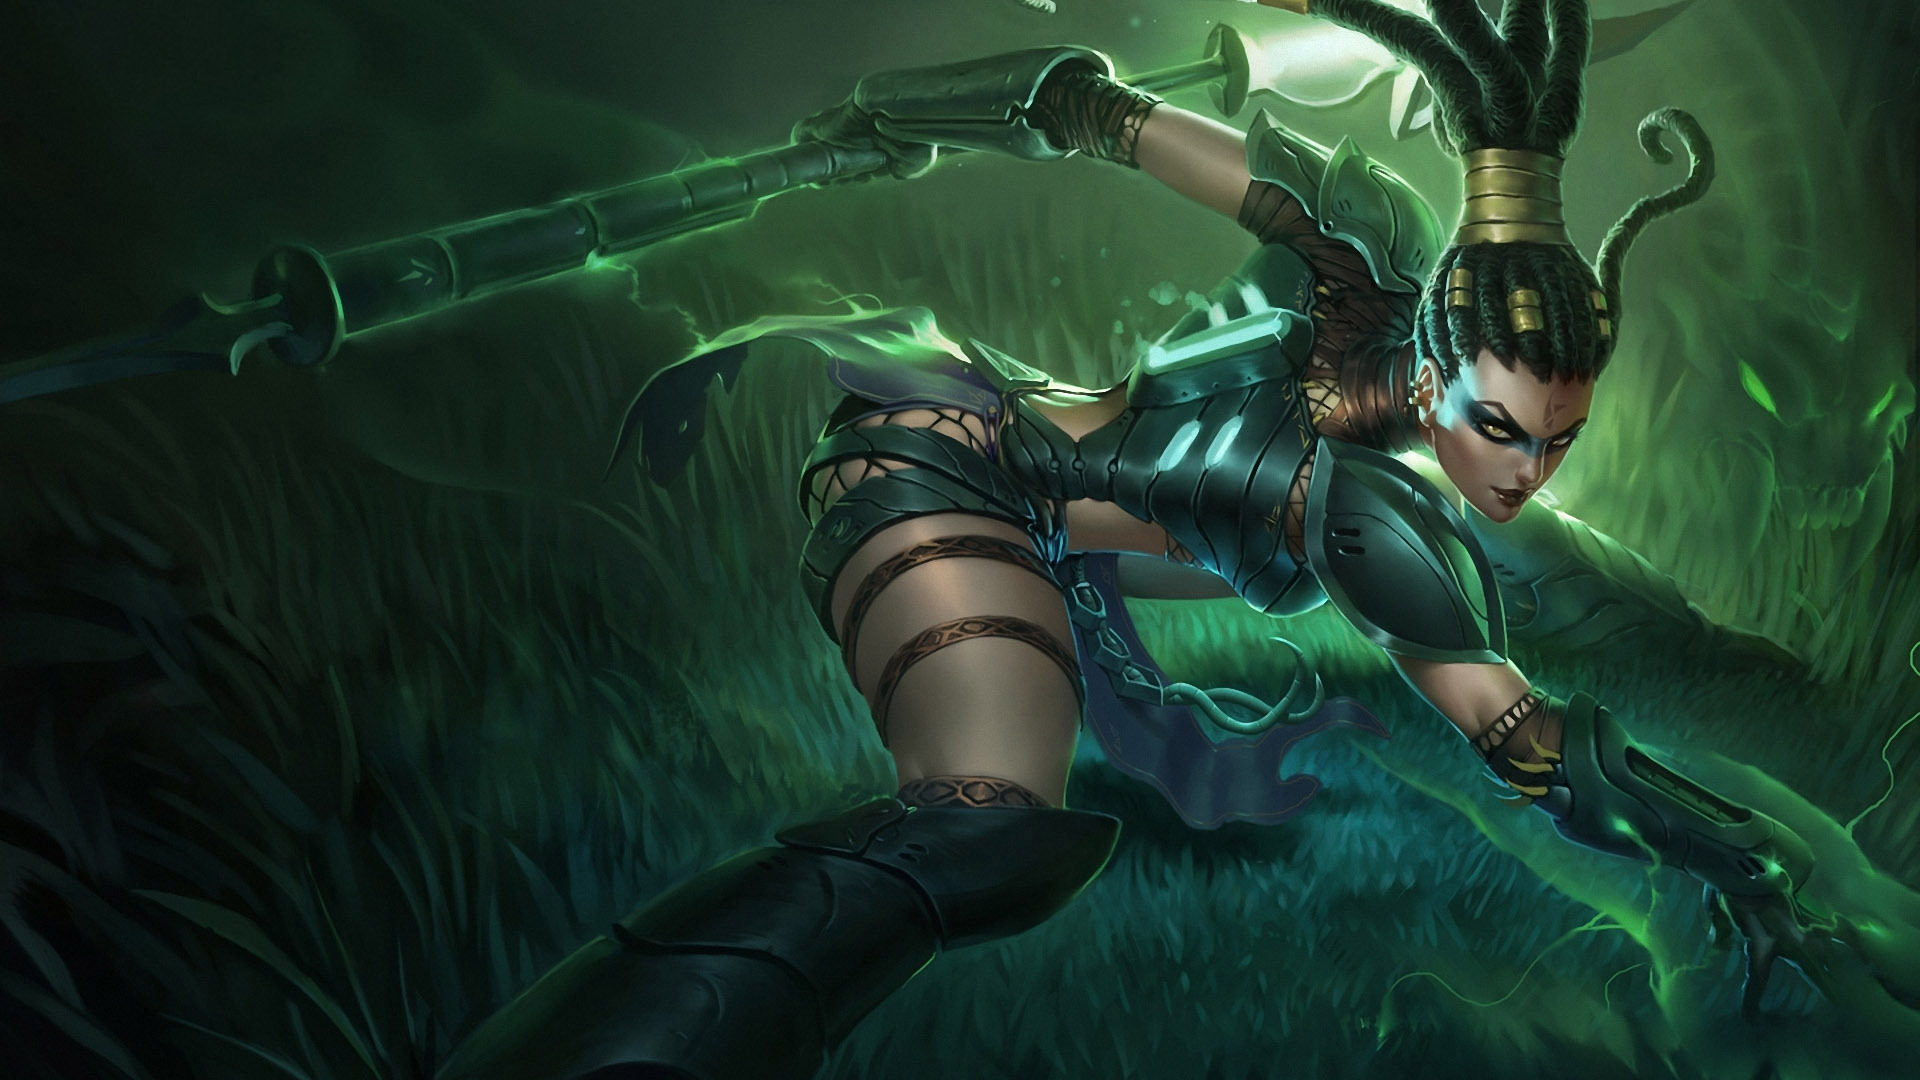 Nidalee   League of Legends HD Wallpaper 1920x1080 1920x1080